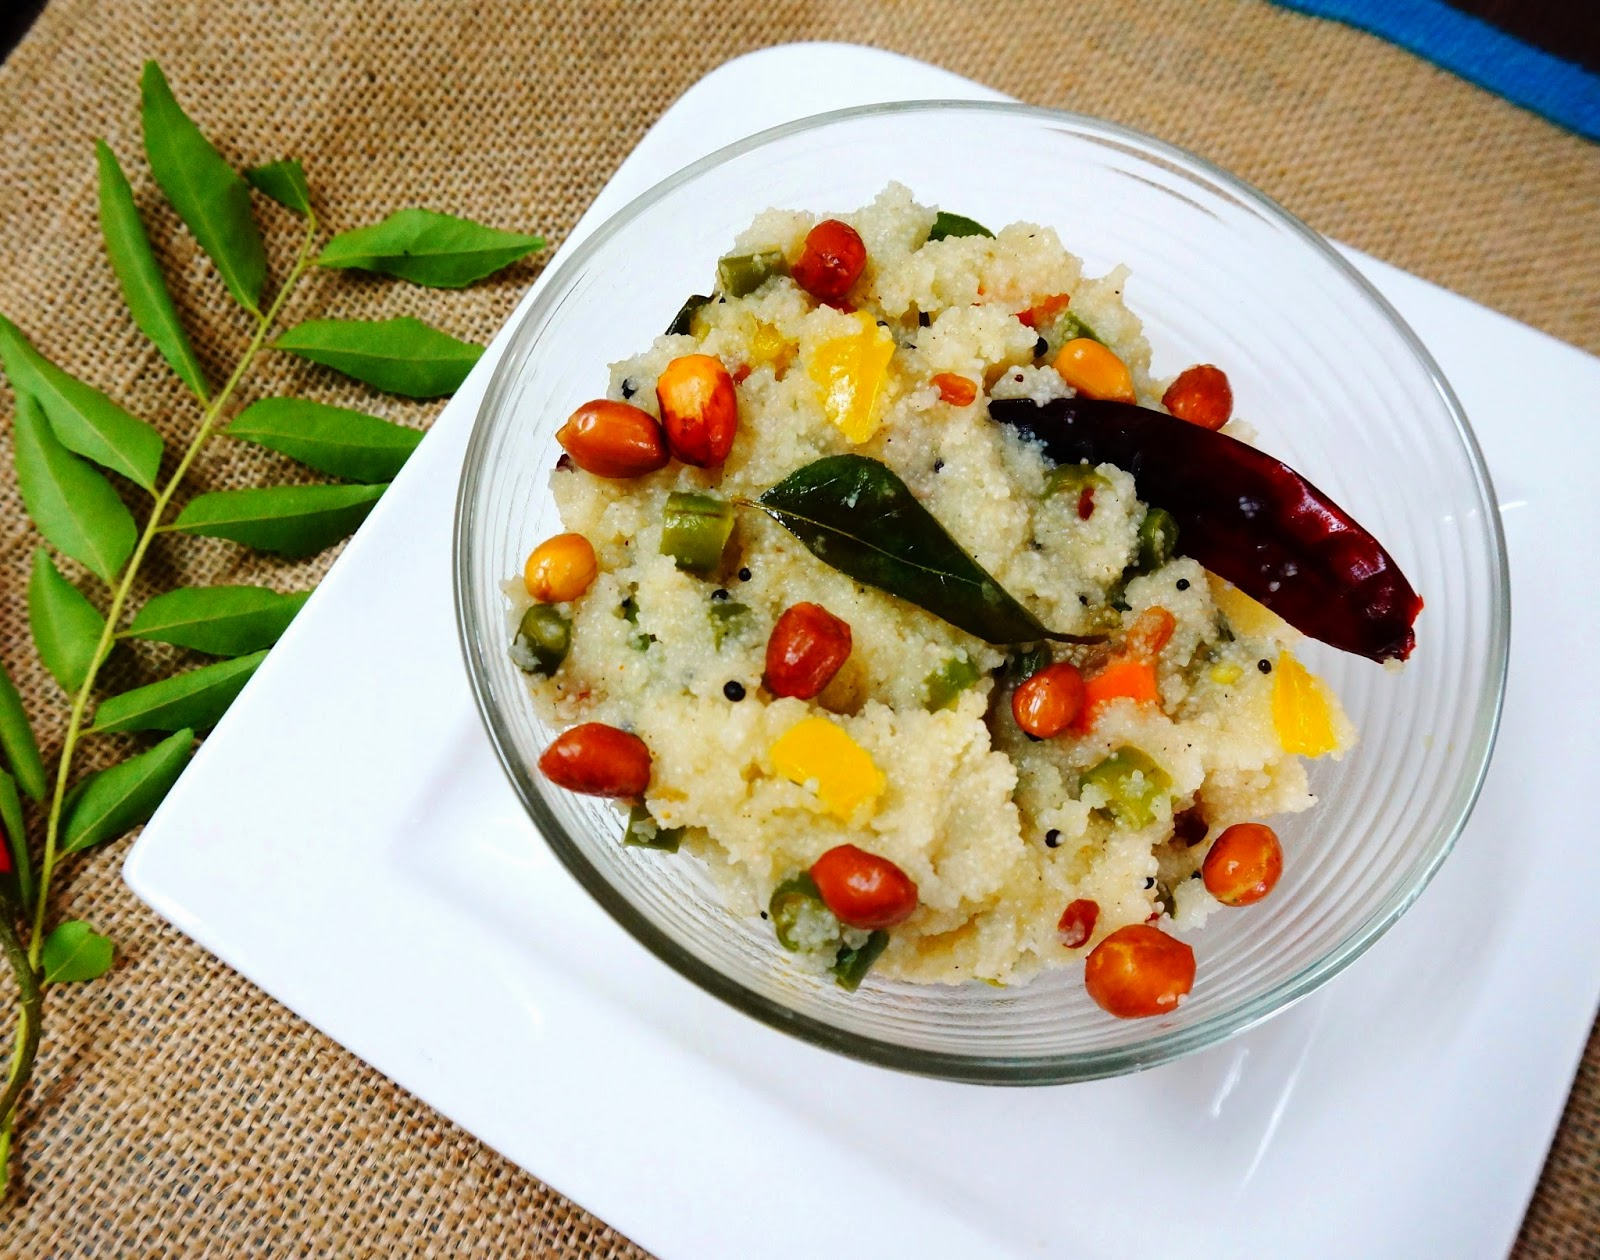 Vegetable upma, sooji upma